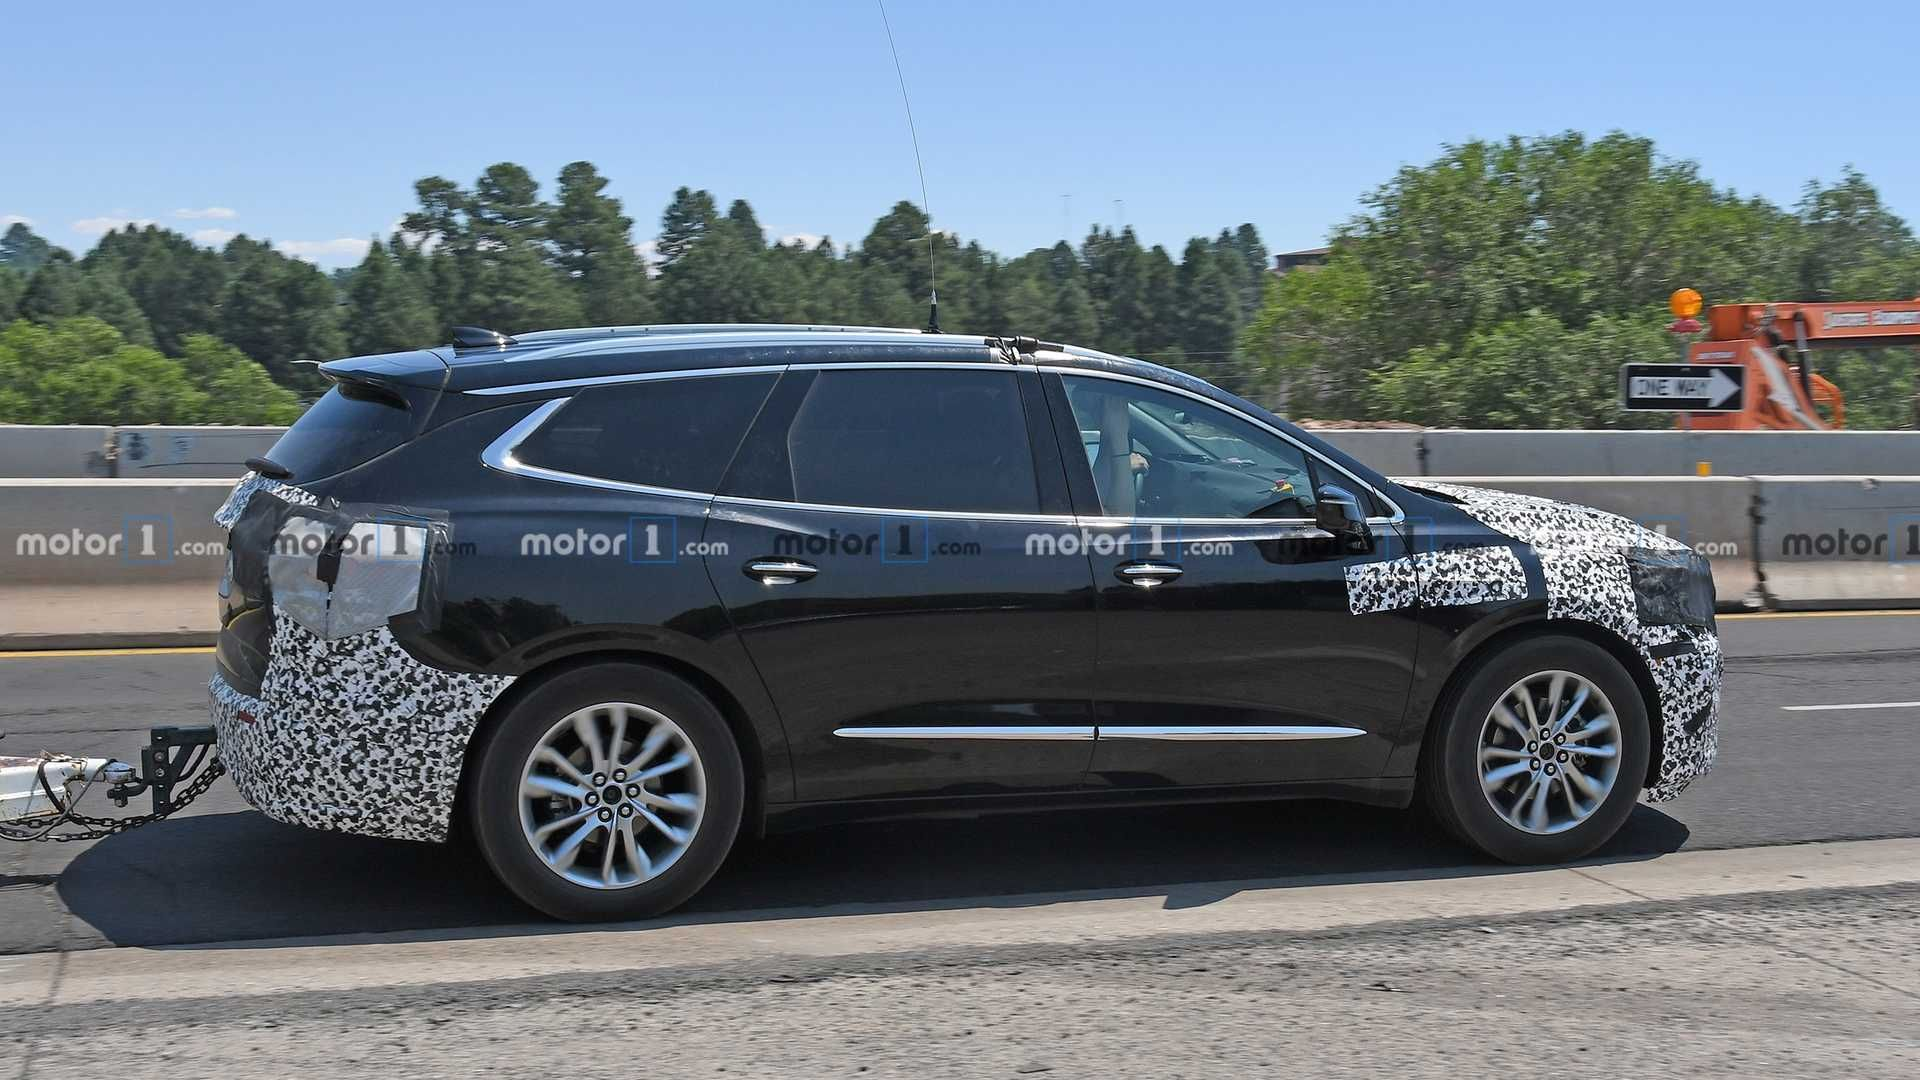 2021 Buick Enclave Owners Manual Buick Enclave Buick Buick Models